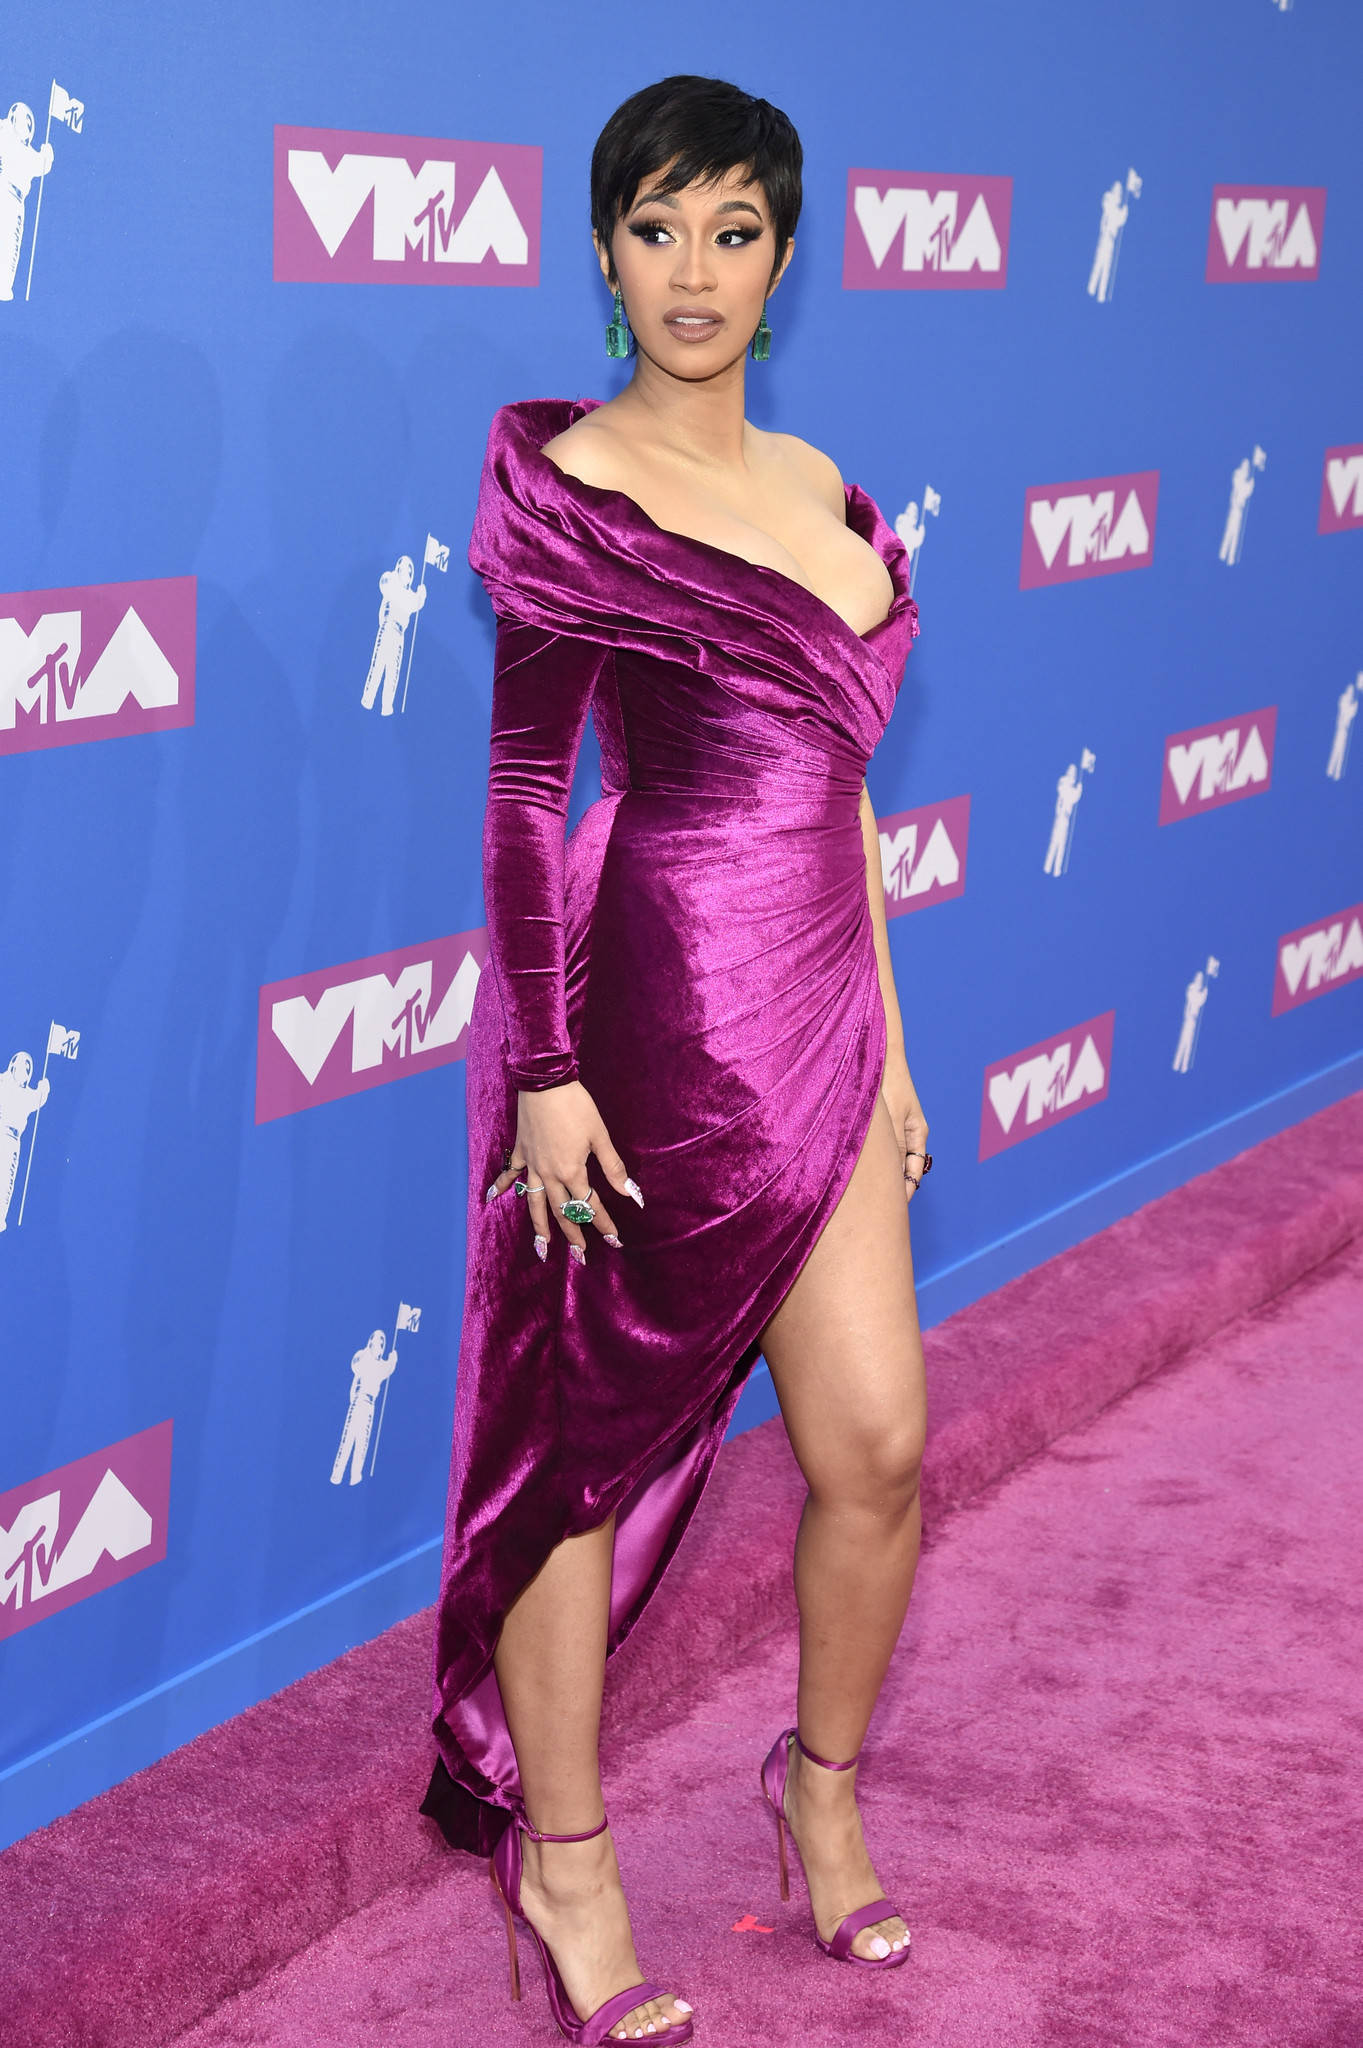 Vmas 2018 Best And Worst Red Carpet Looks At Mtvs Video Music